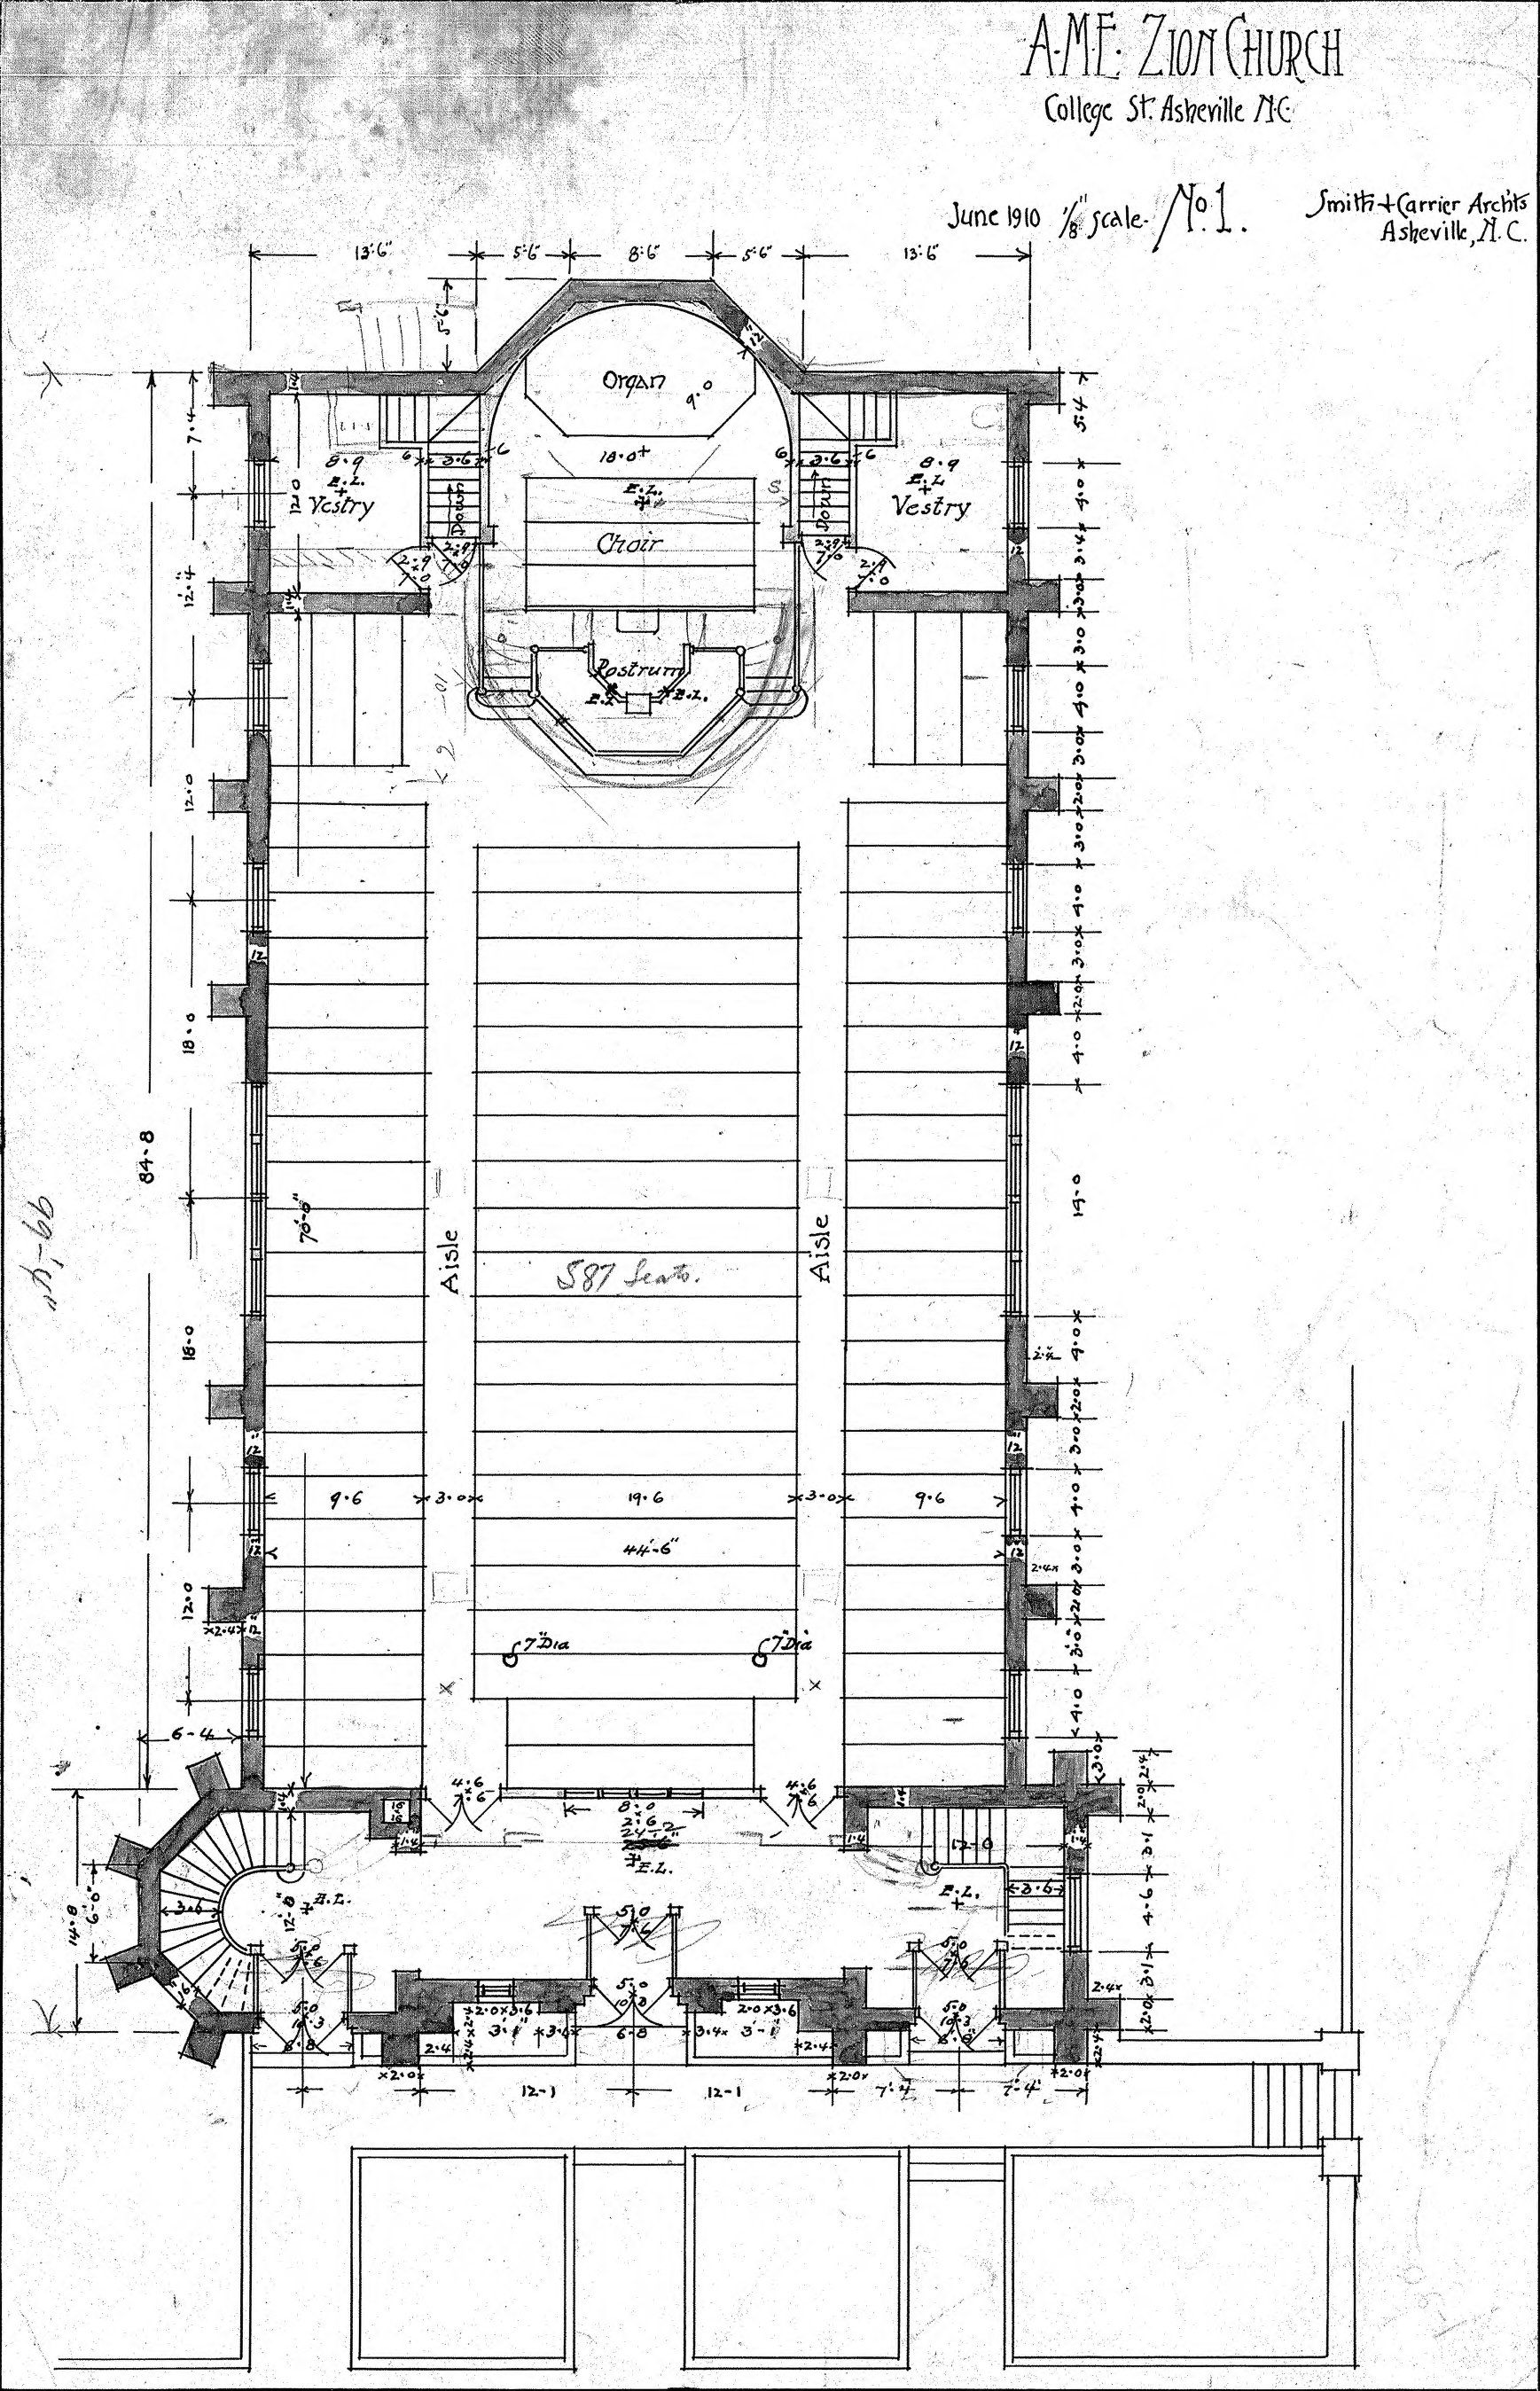 Church Floor Plans Museums Architecture Pinterest Churches Museum Architecture And